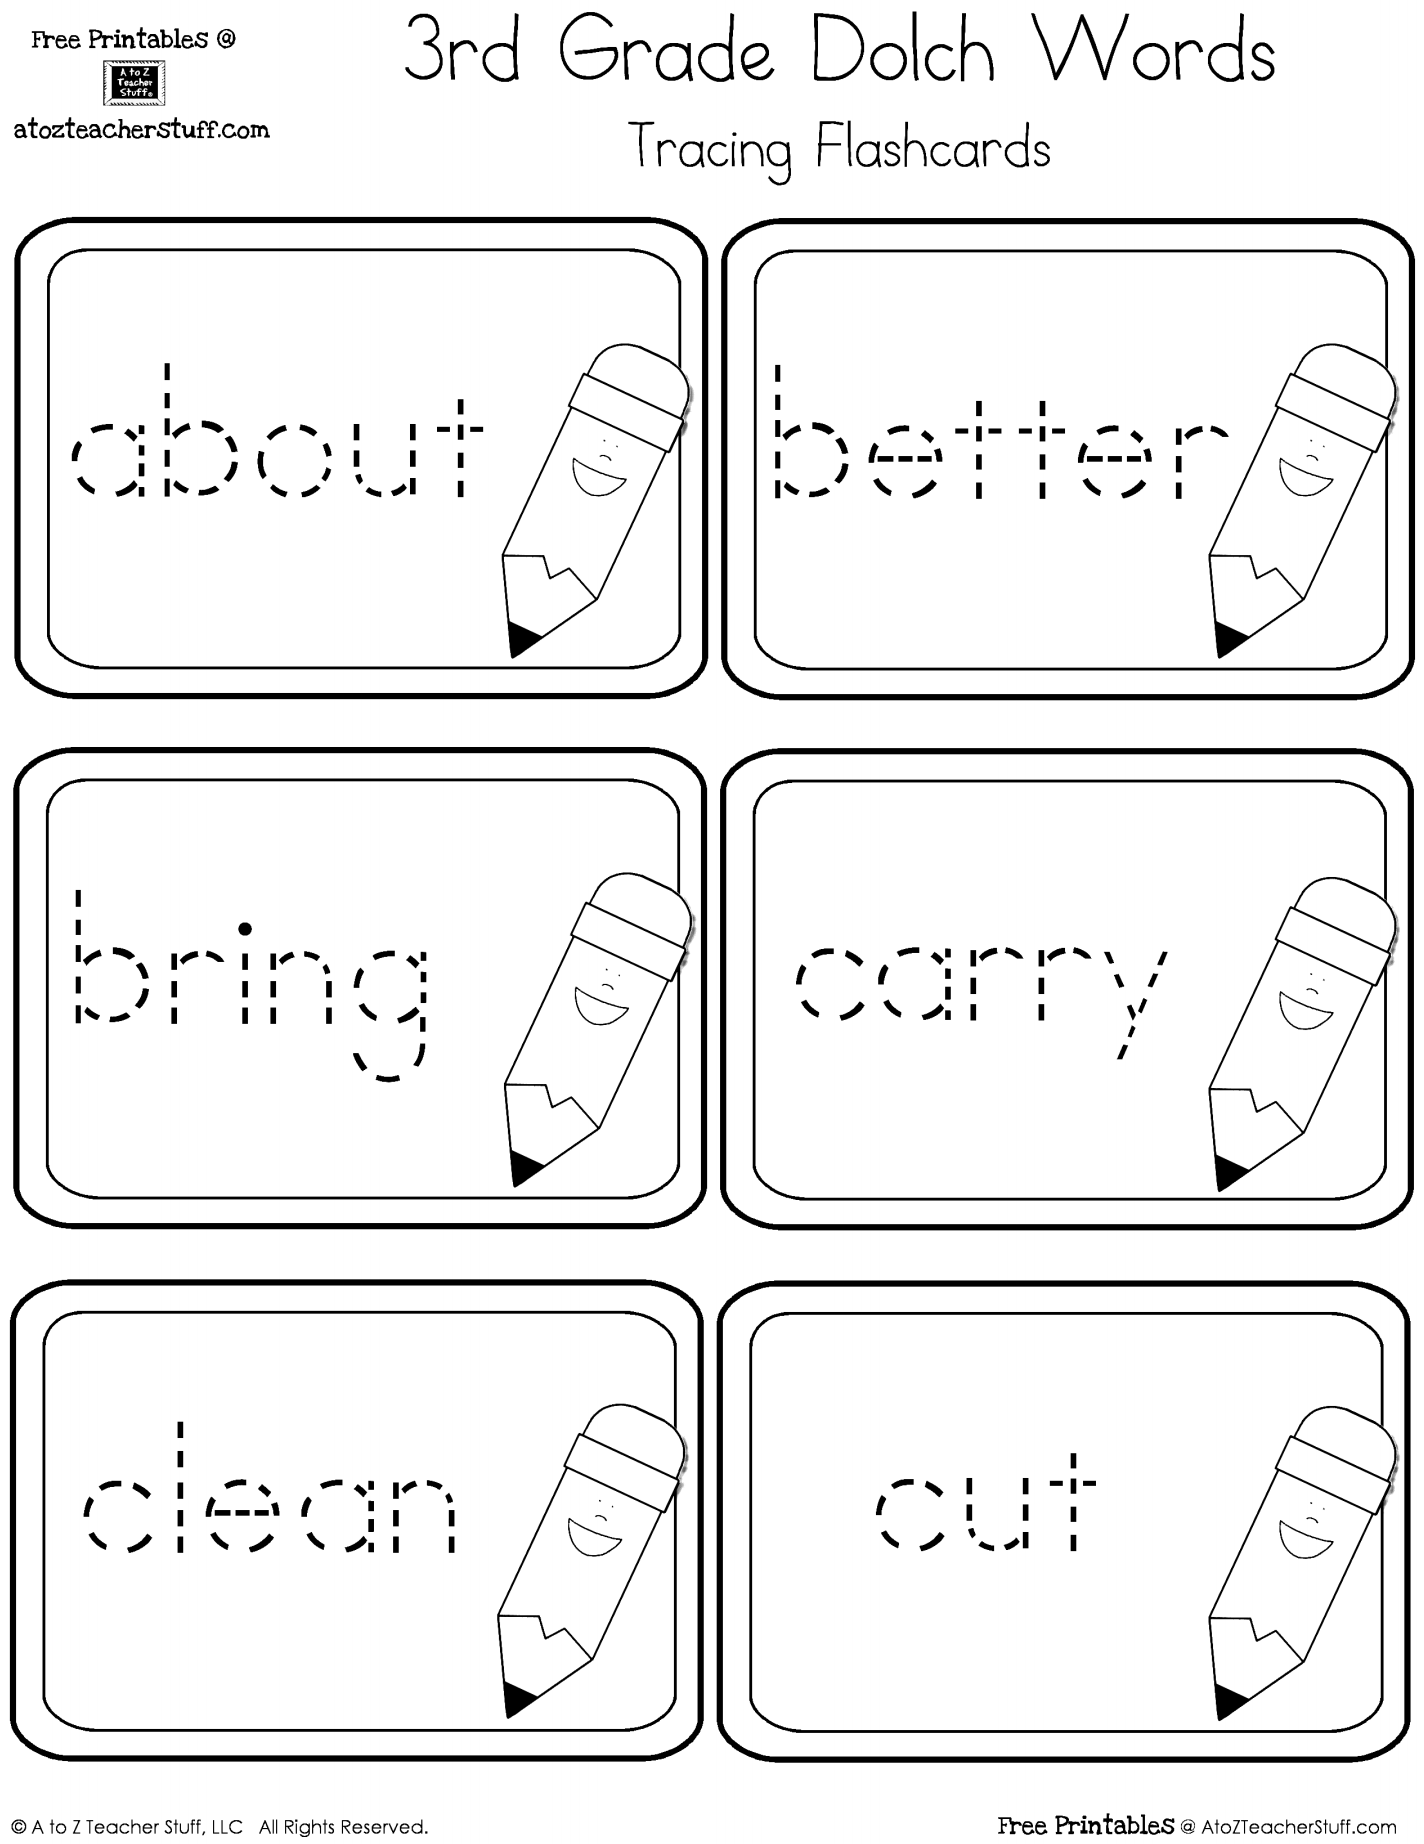 worksheet First Grade Sight Word Worksheets third grade dolch sight words tracing flashcards a to z teacher 3rd cards free printables